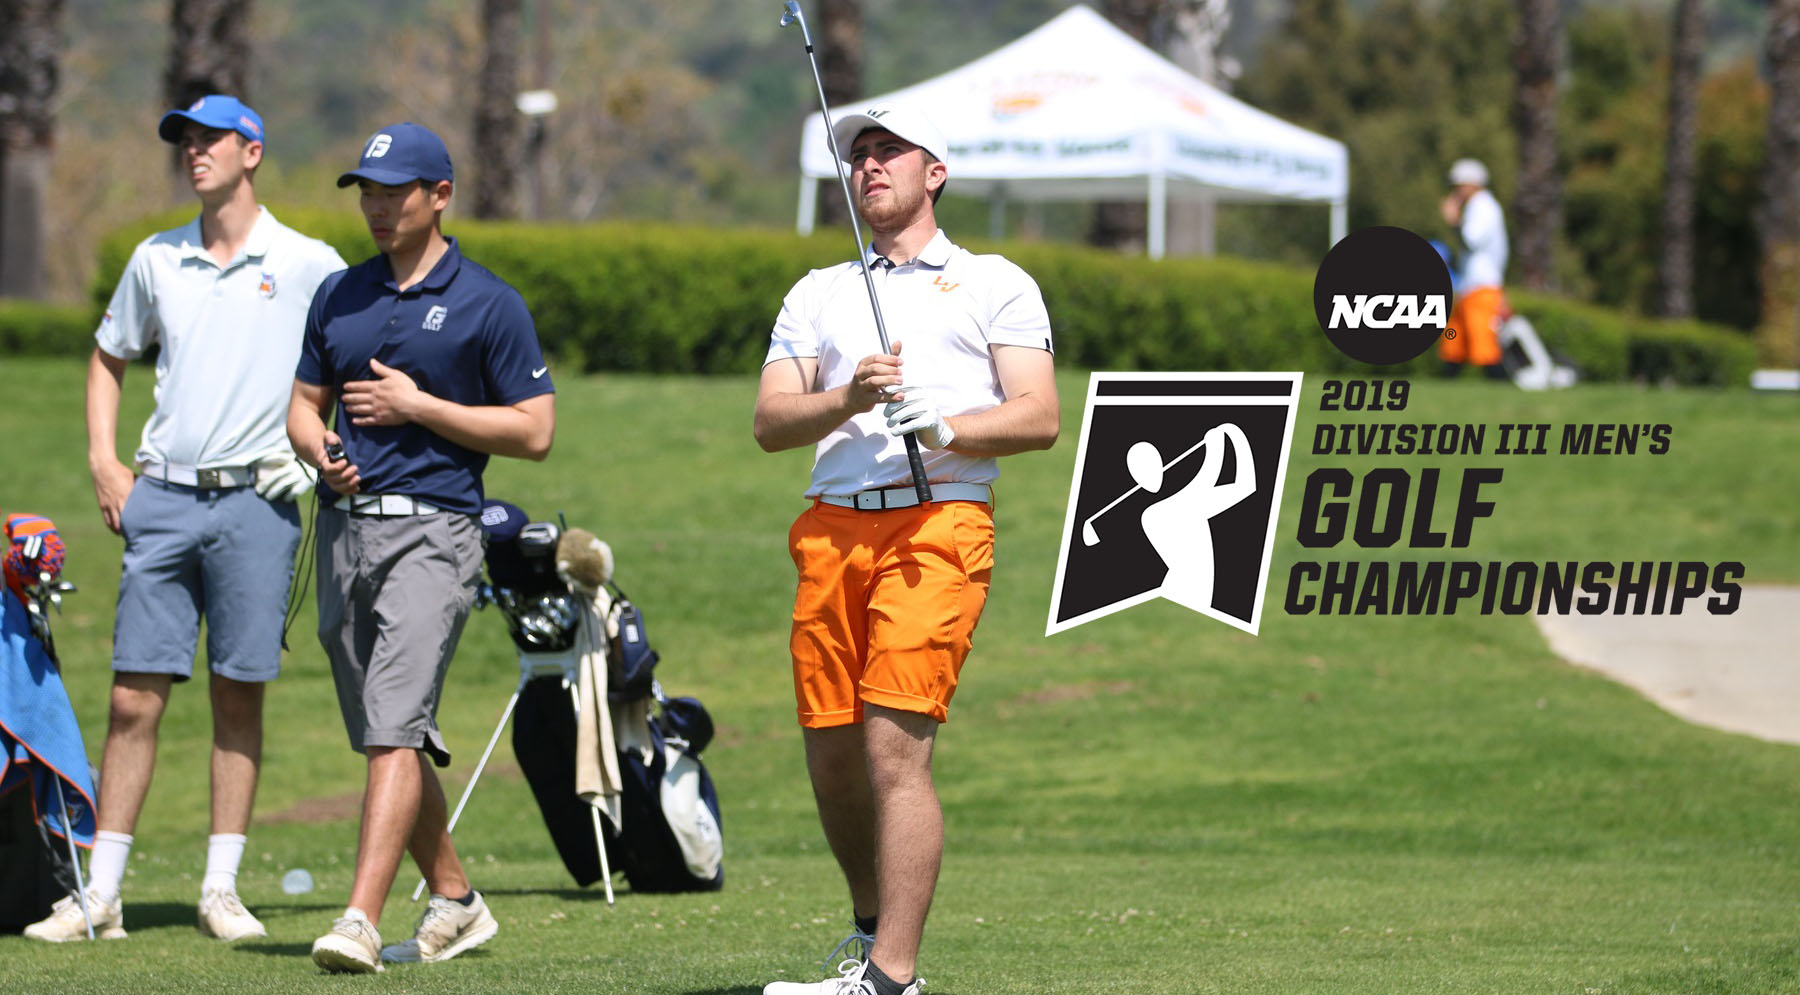 Hussein leads Leopards on Day One of NCAAs